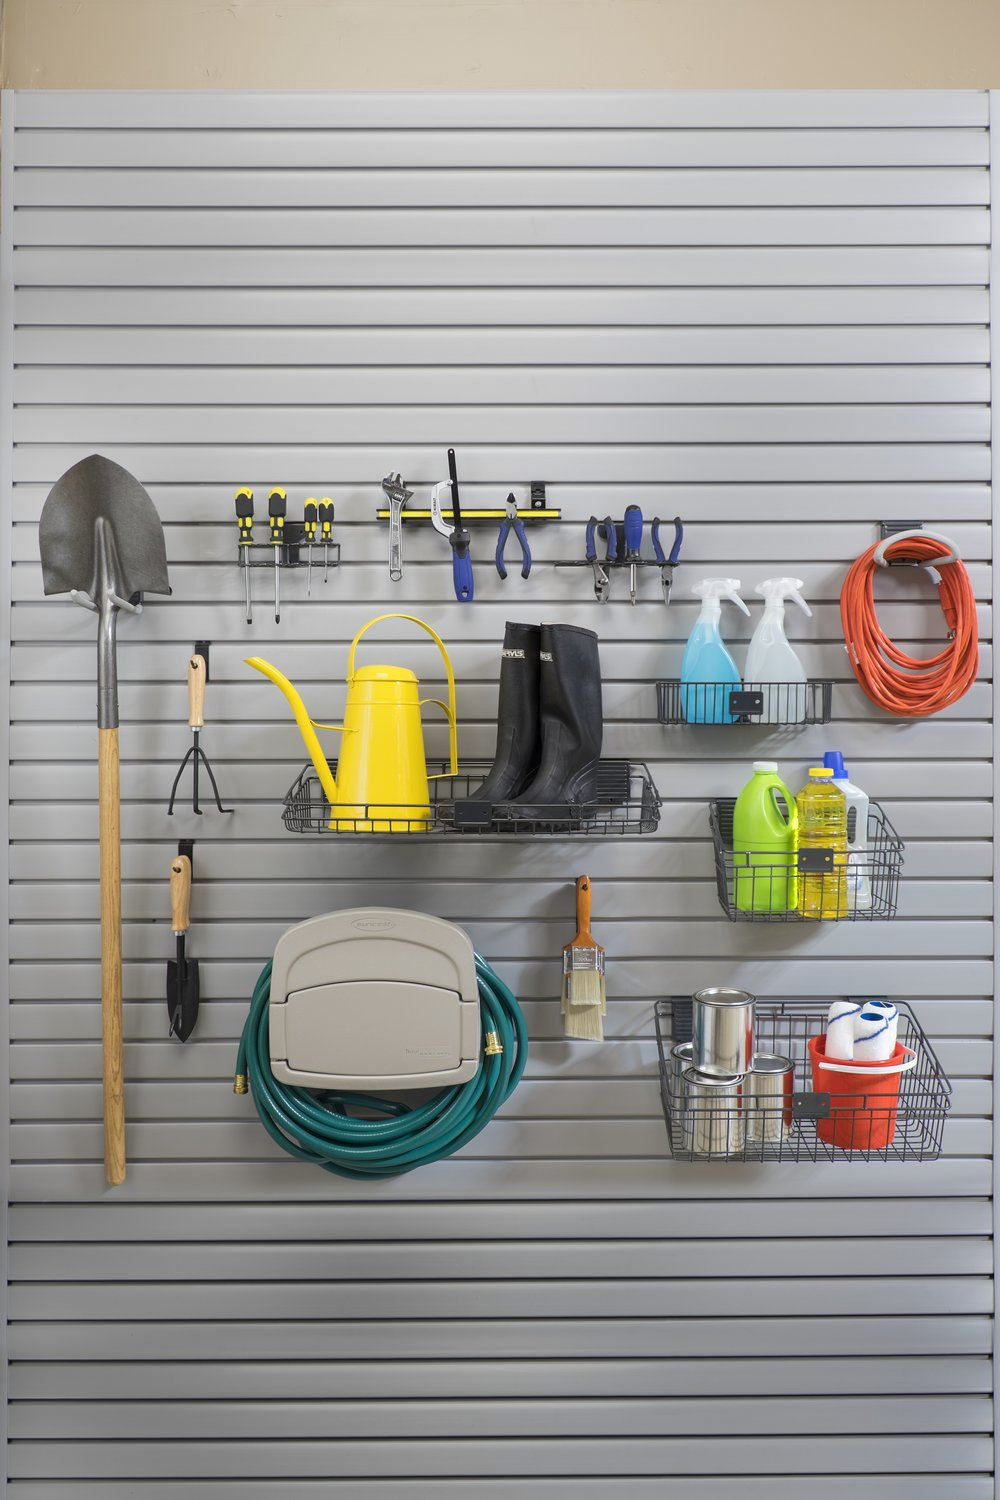 Garage storage isn't just about cabinets. This innovative garage slatwall by Closets of Tulsa creates clean, customizable, easy-access tool storage to keep you organized.